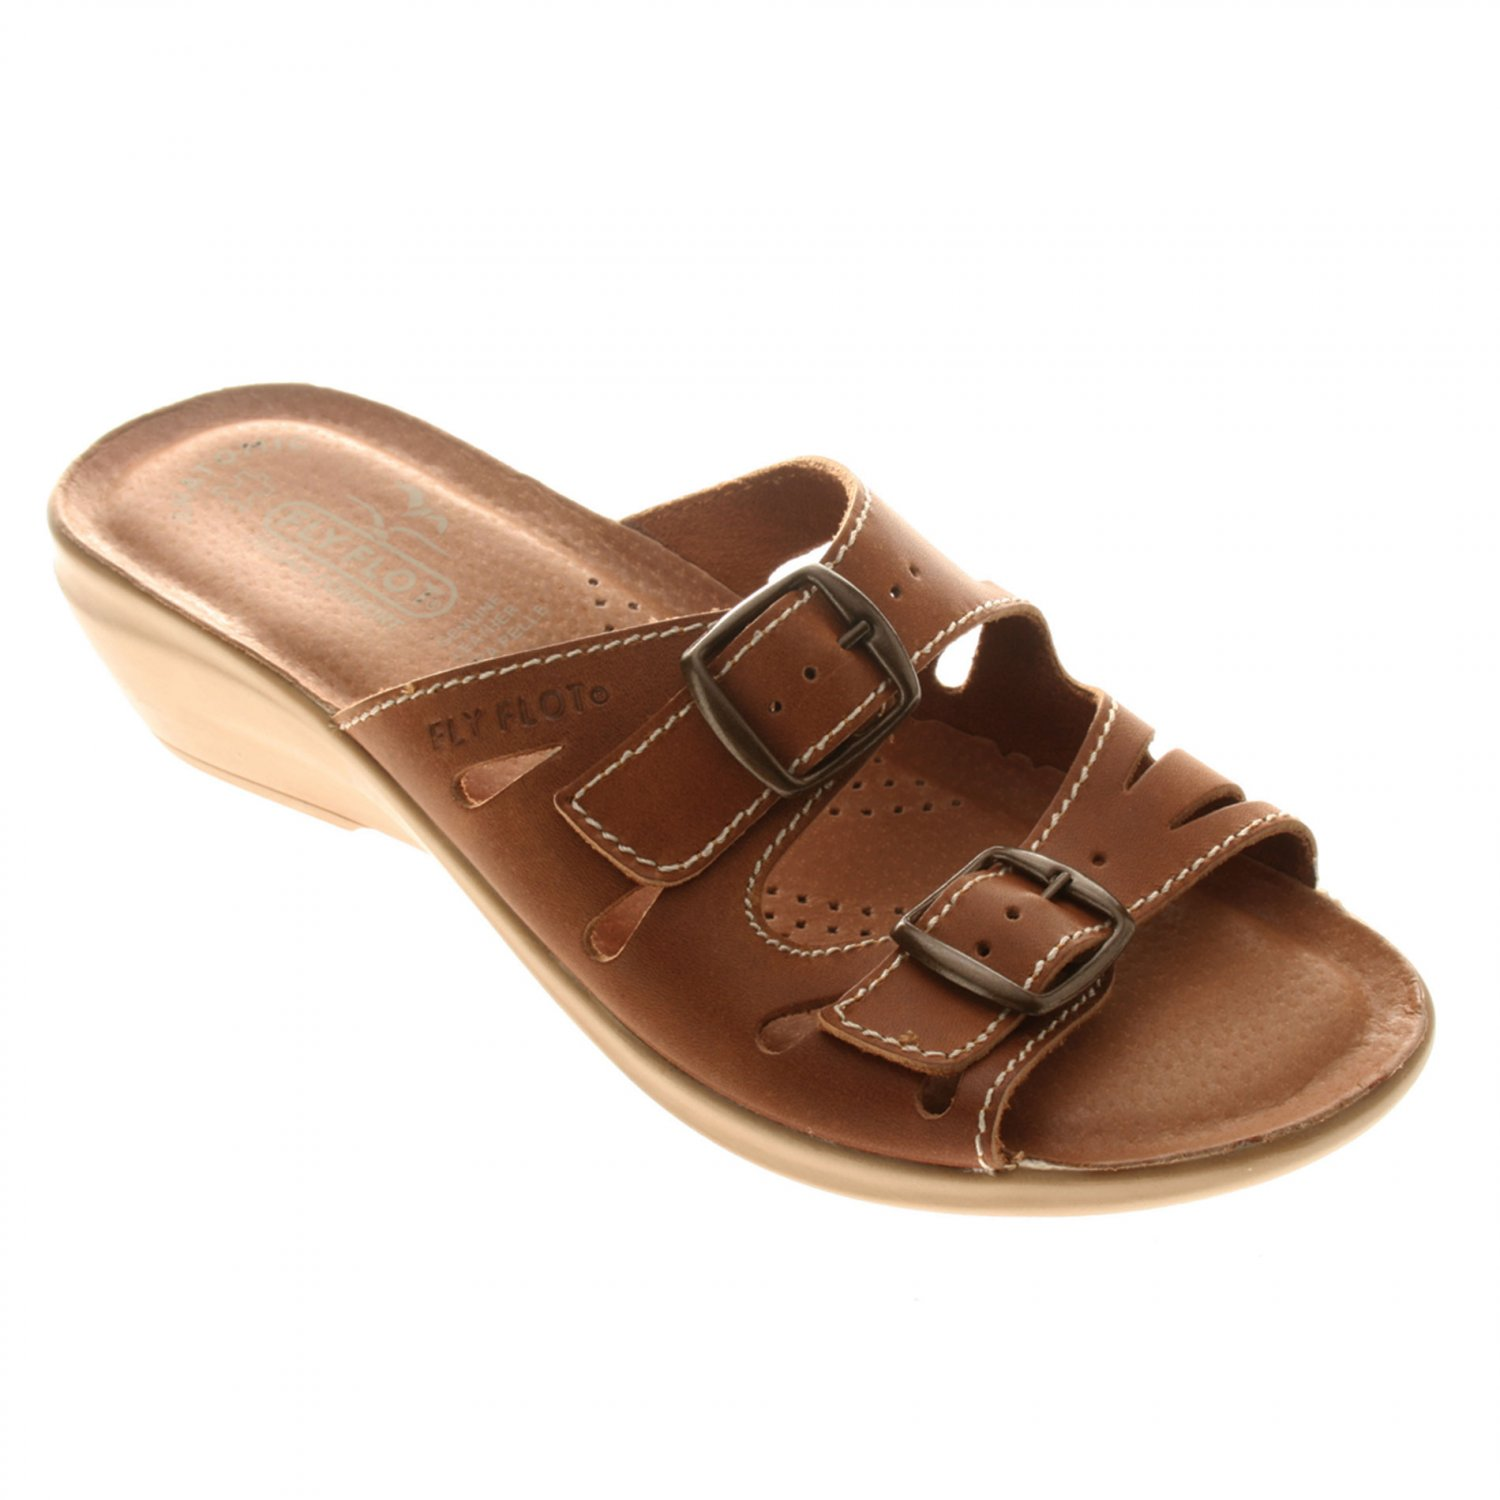 FLY FLOT GITANA Sandals Shoes All Sizes & Colors $59.99